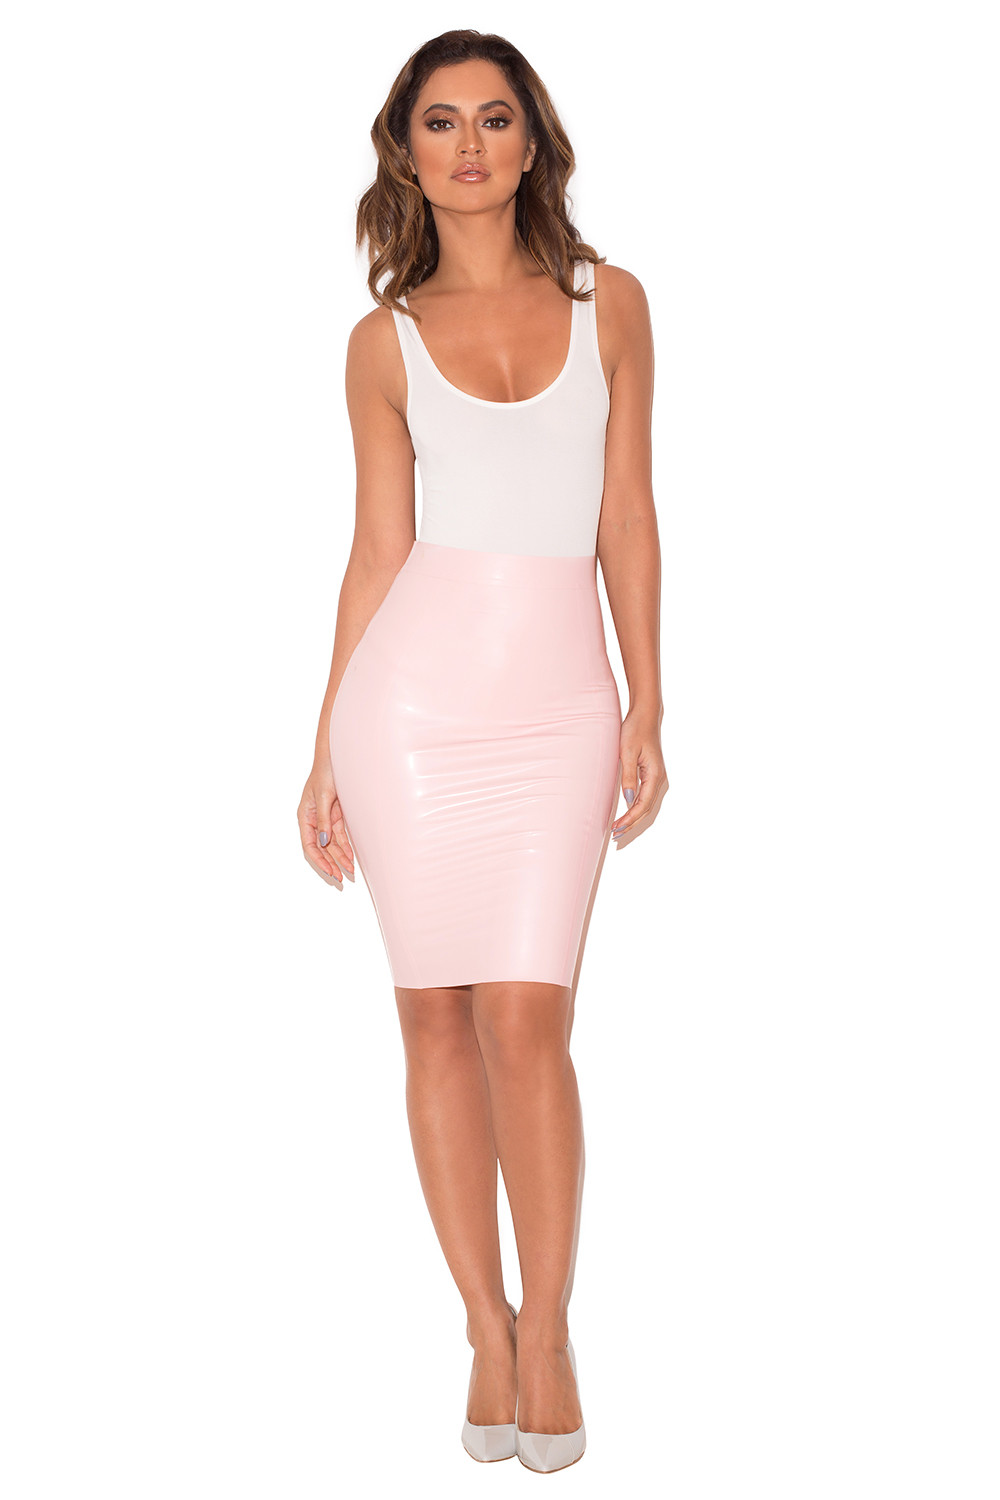 clothing skirts sofia baby pink pencil skirt